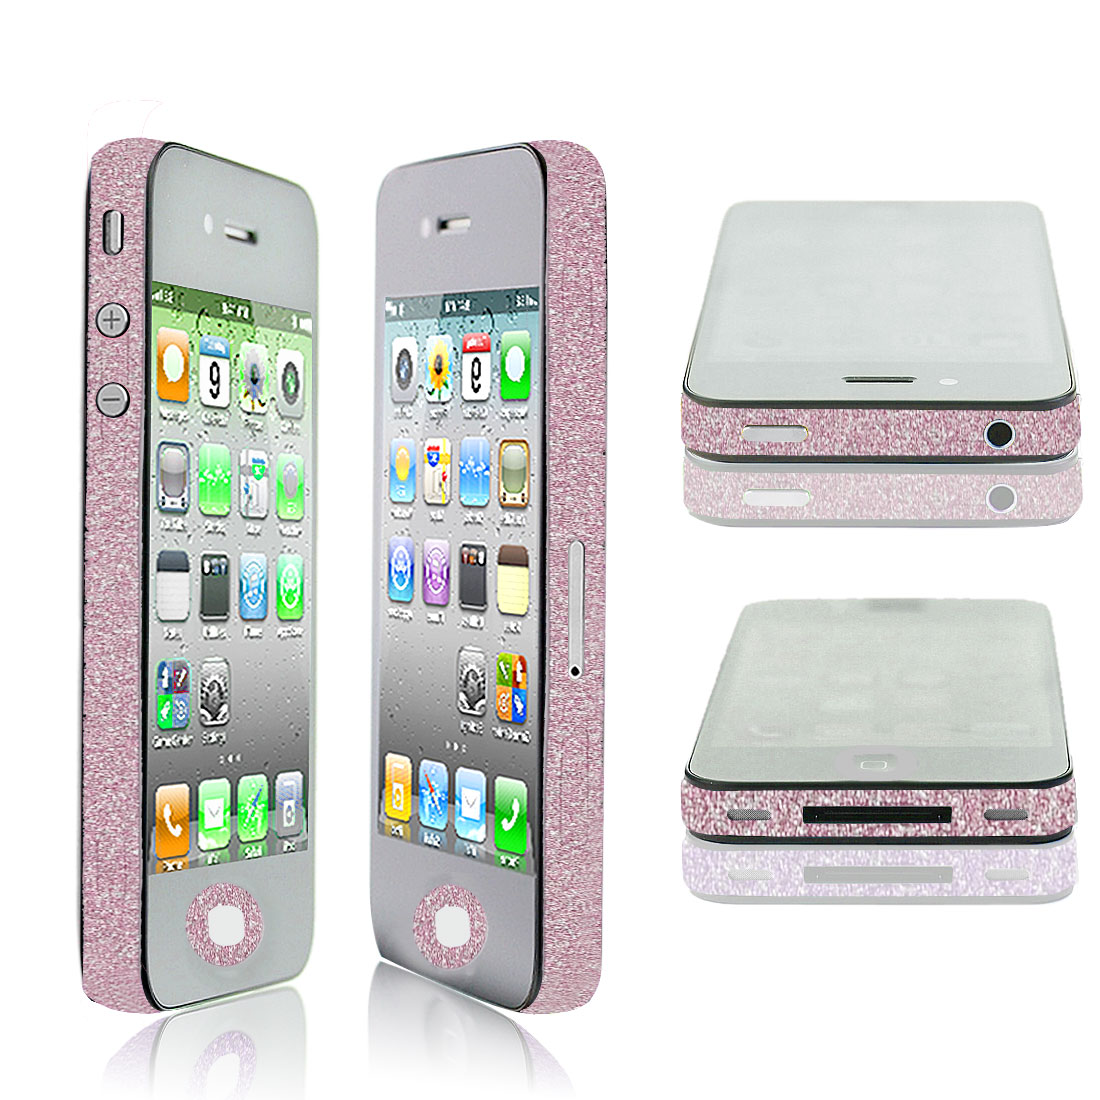 Glitter Pale Pink Vinyl Edge Wrap Decal Skin Sticker for iPhone 4 4G 4S 4GS